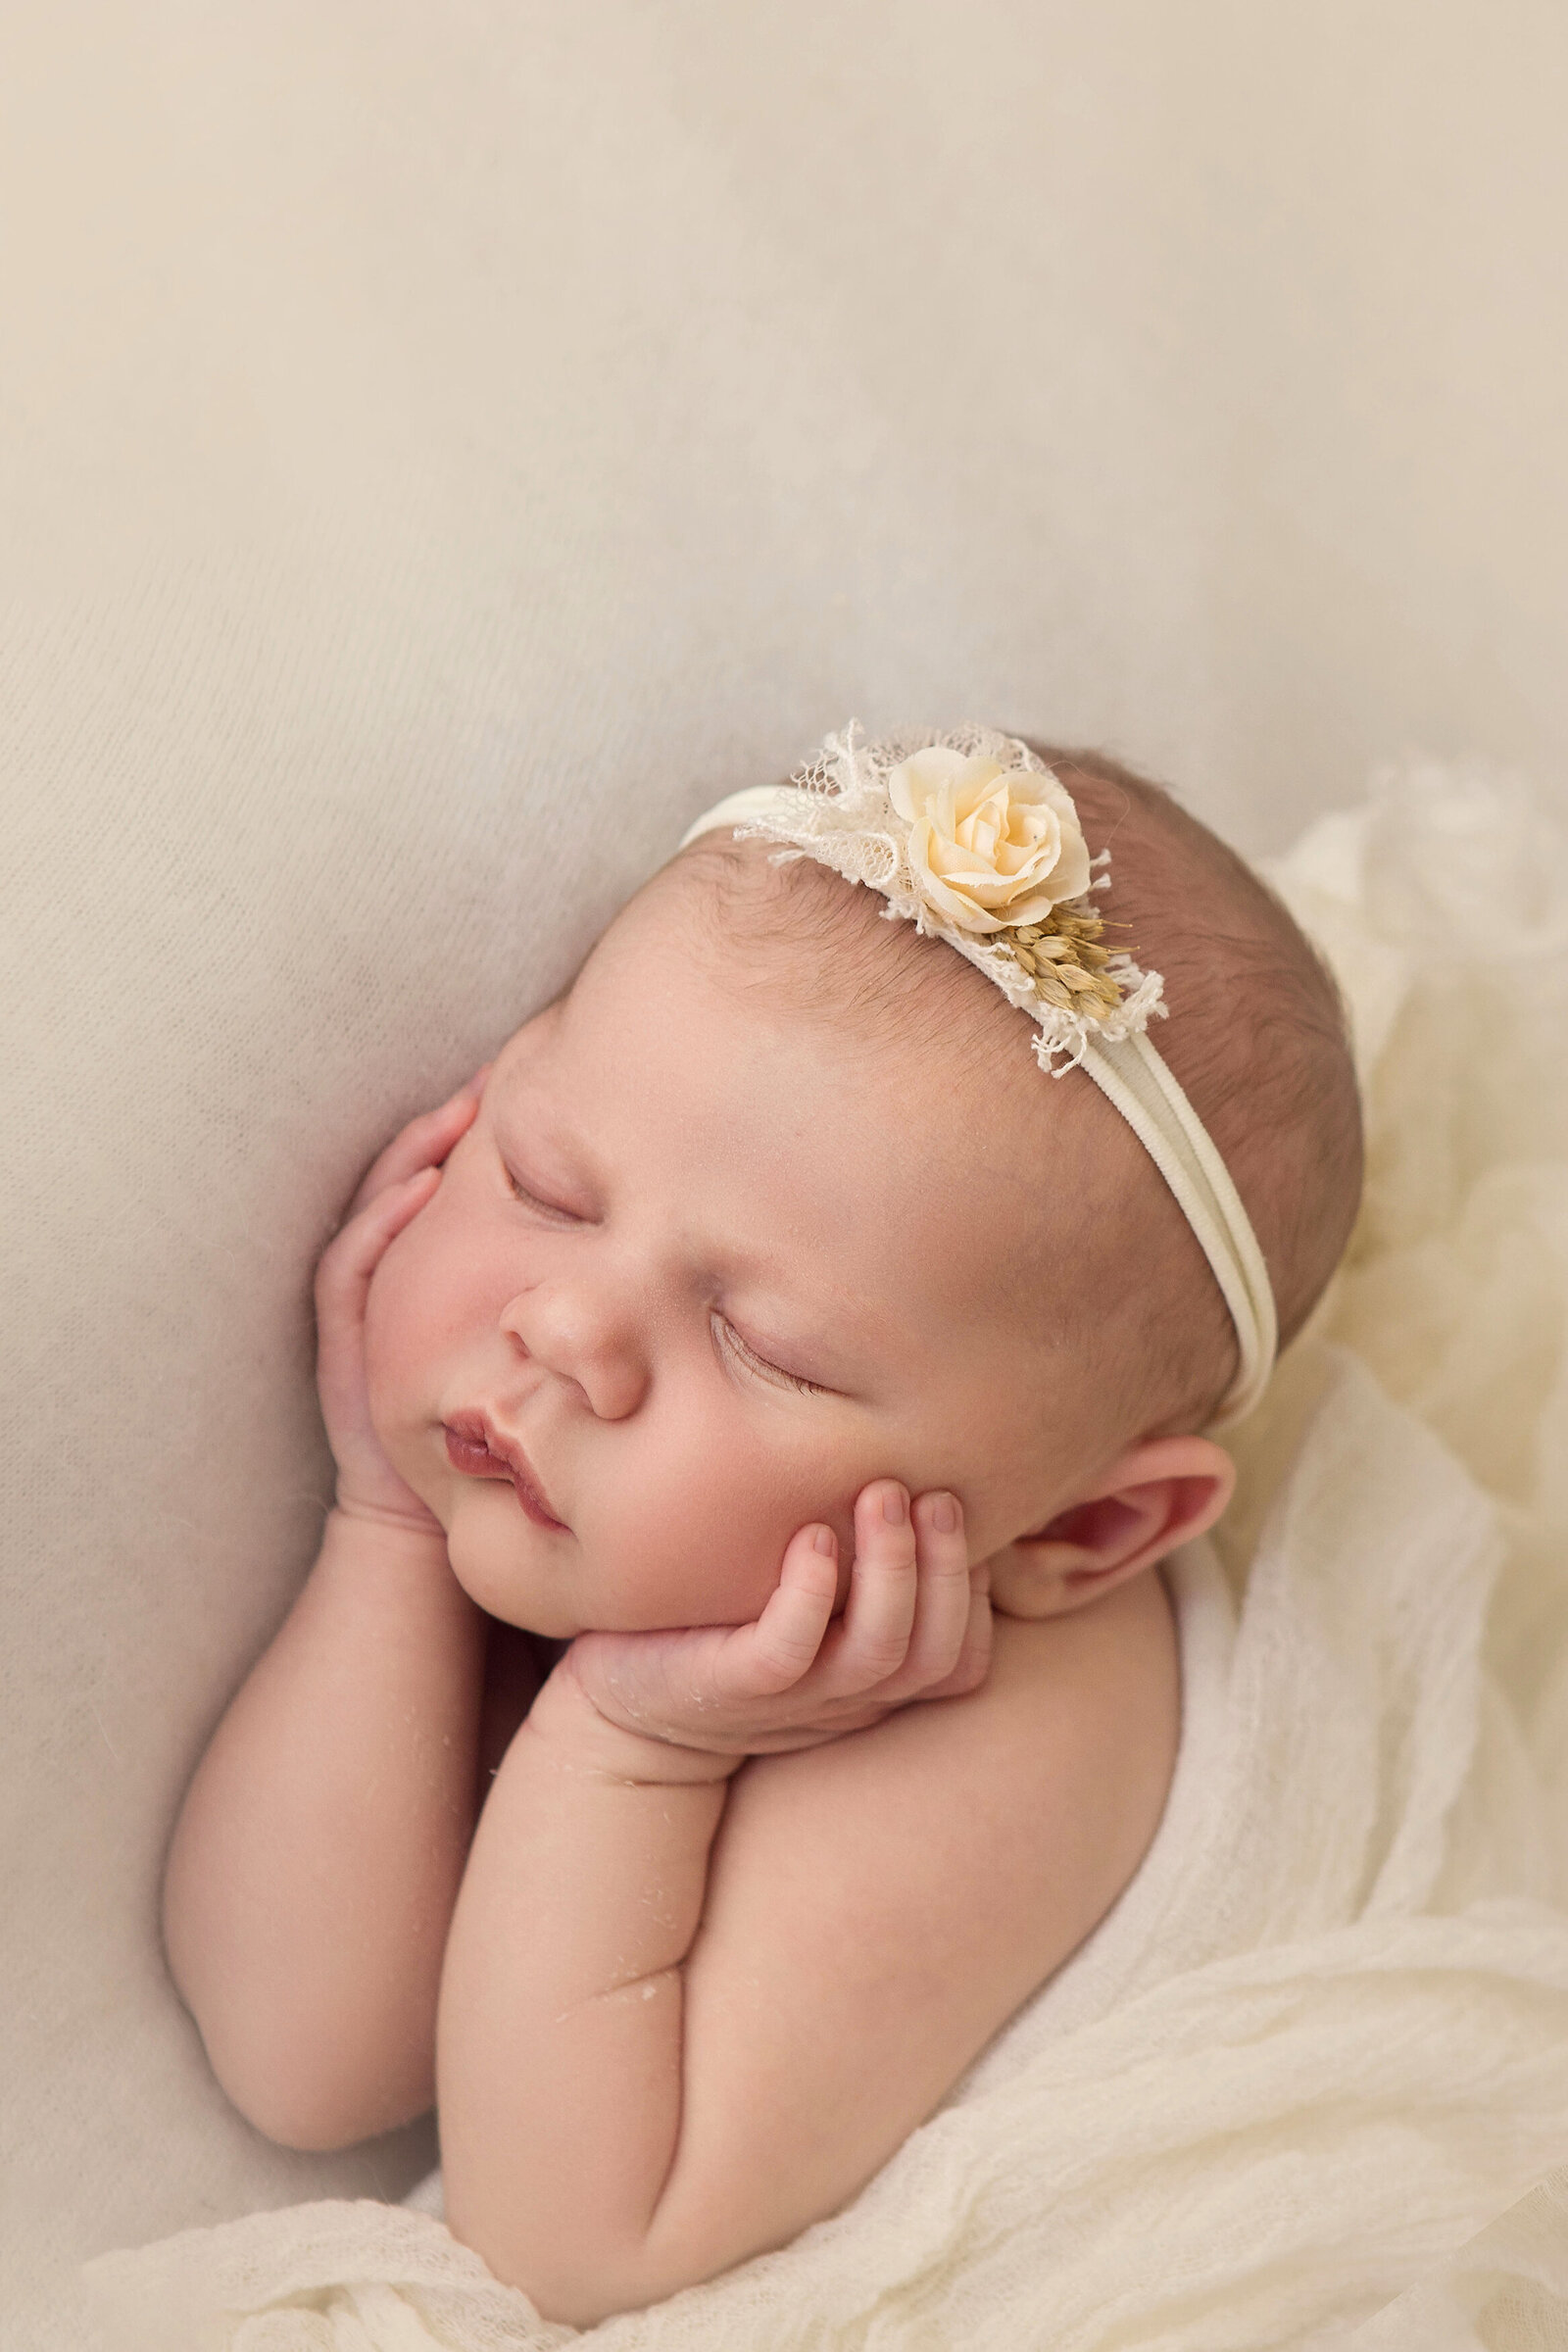 Professional studio portrait of newborn baby asleep with yellow flower headband